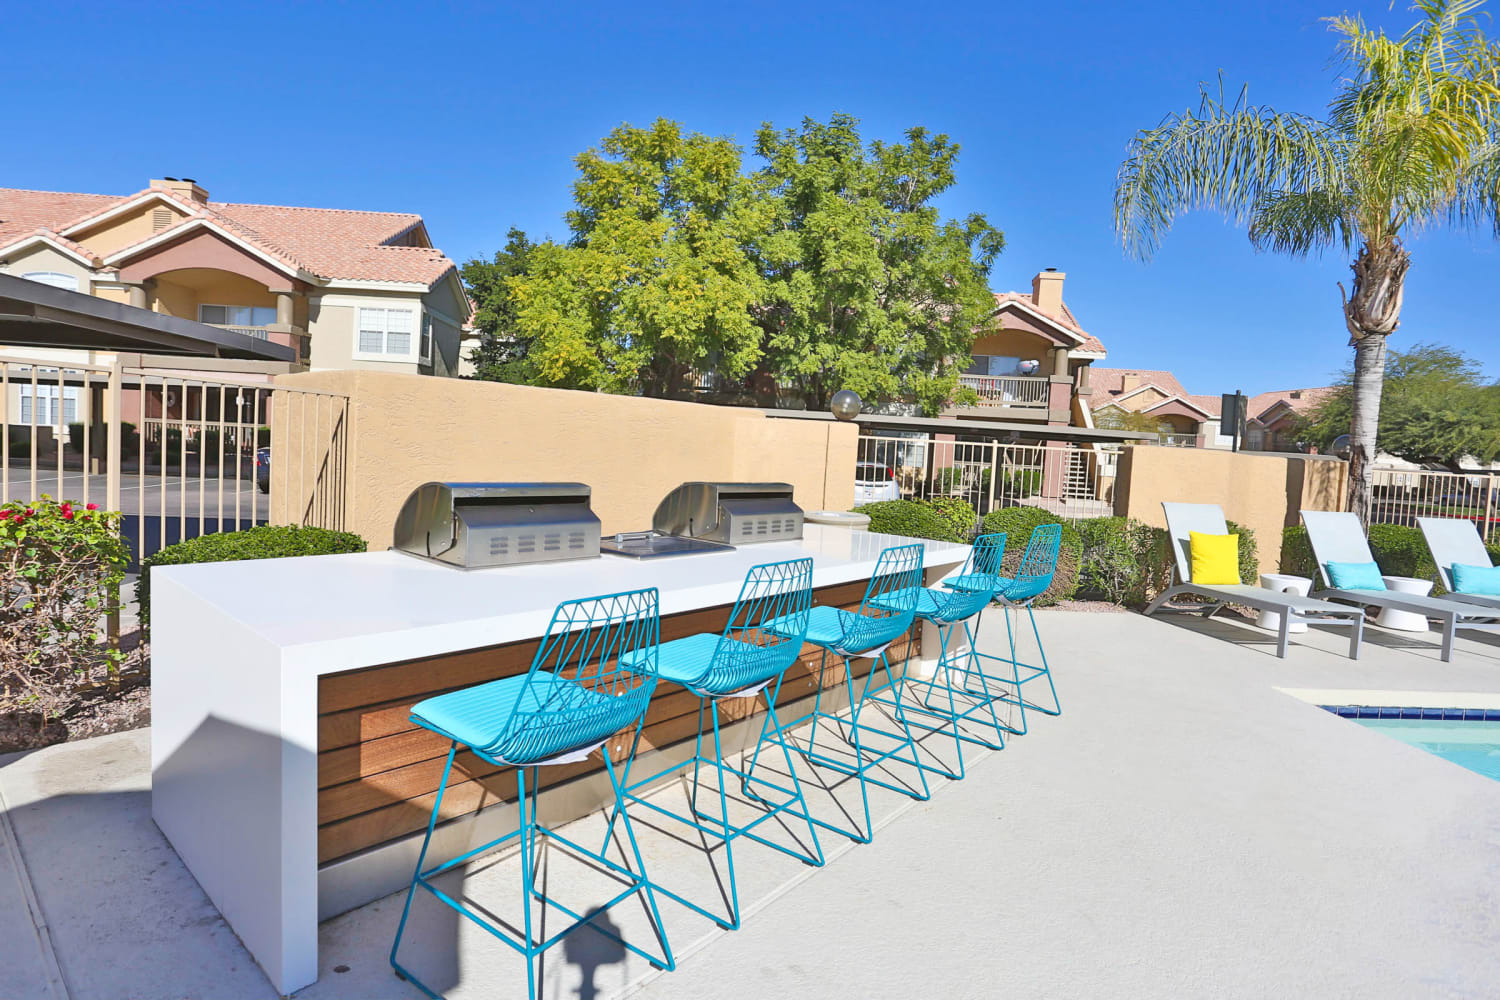 Sonoran Vista Apartments in Scottsdale, Arizona, offer access to a barbecue area near the pool